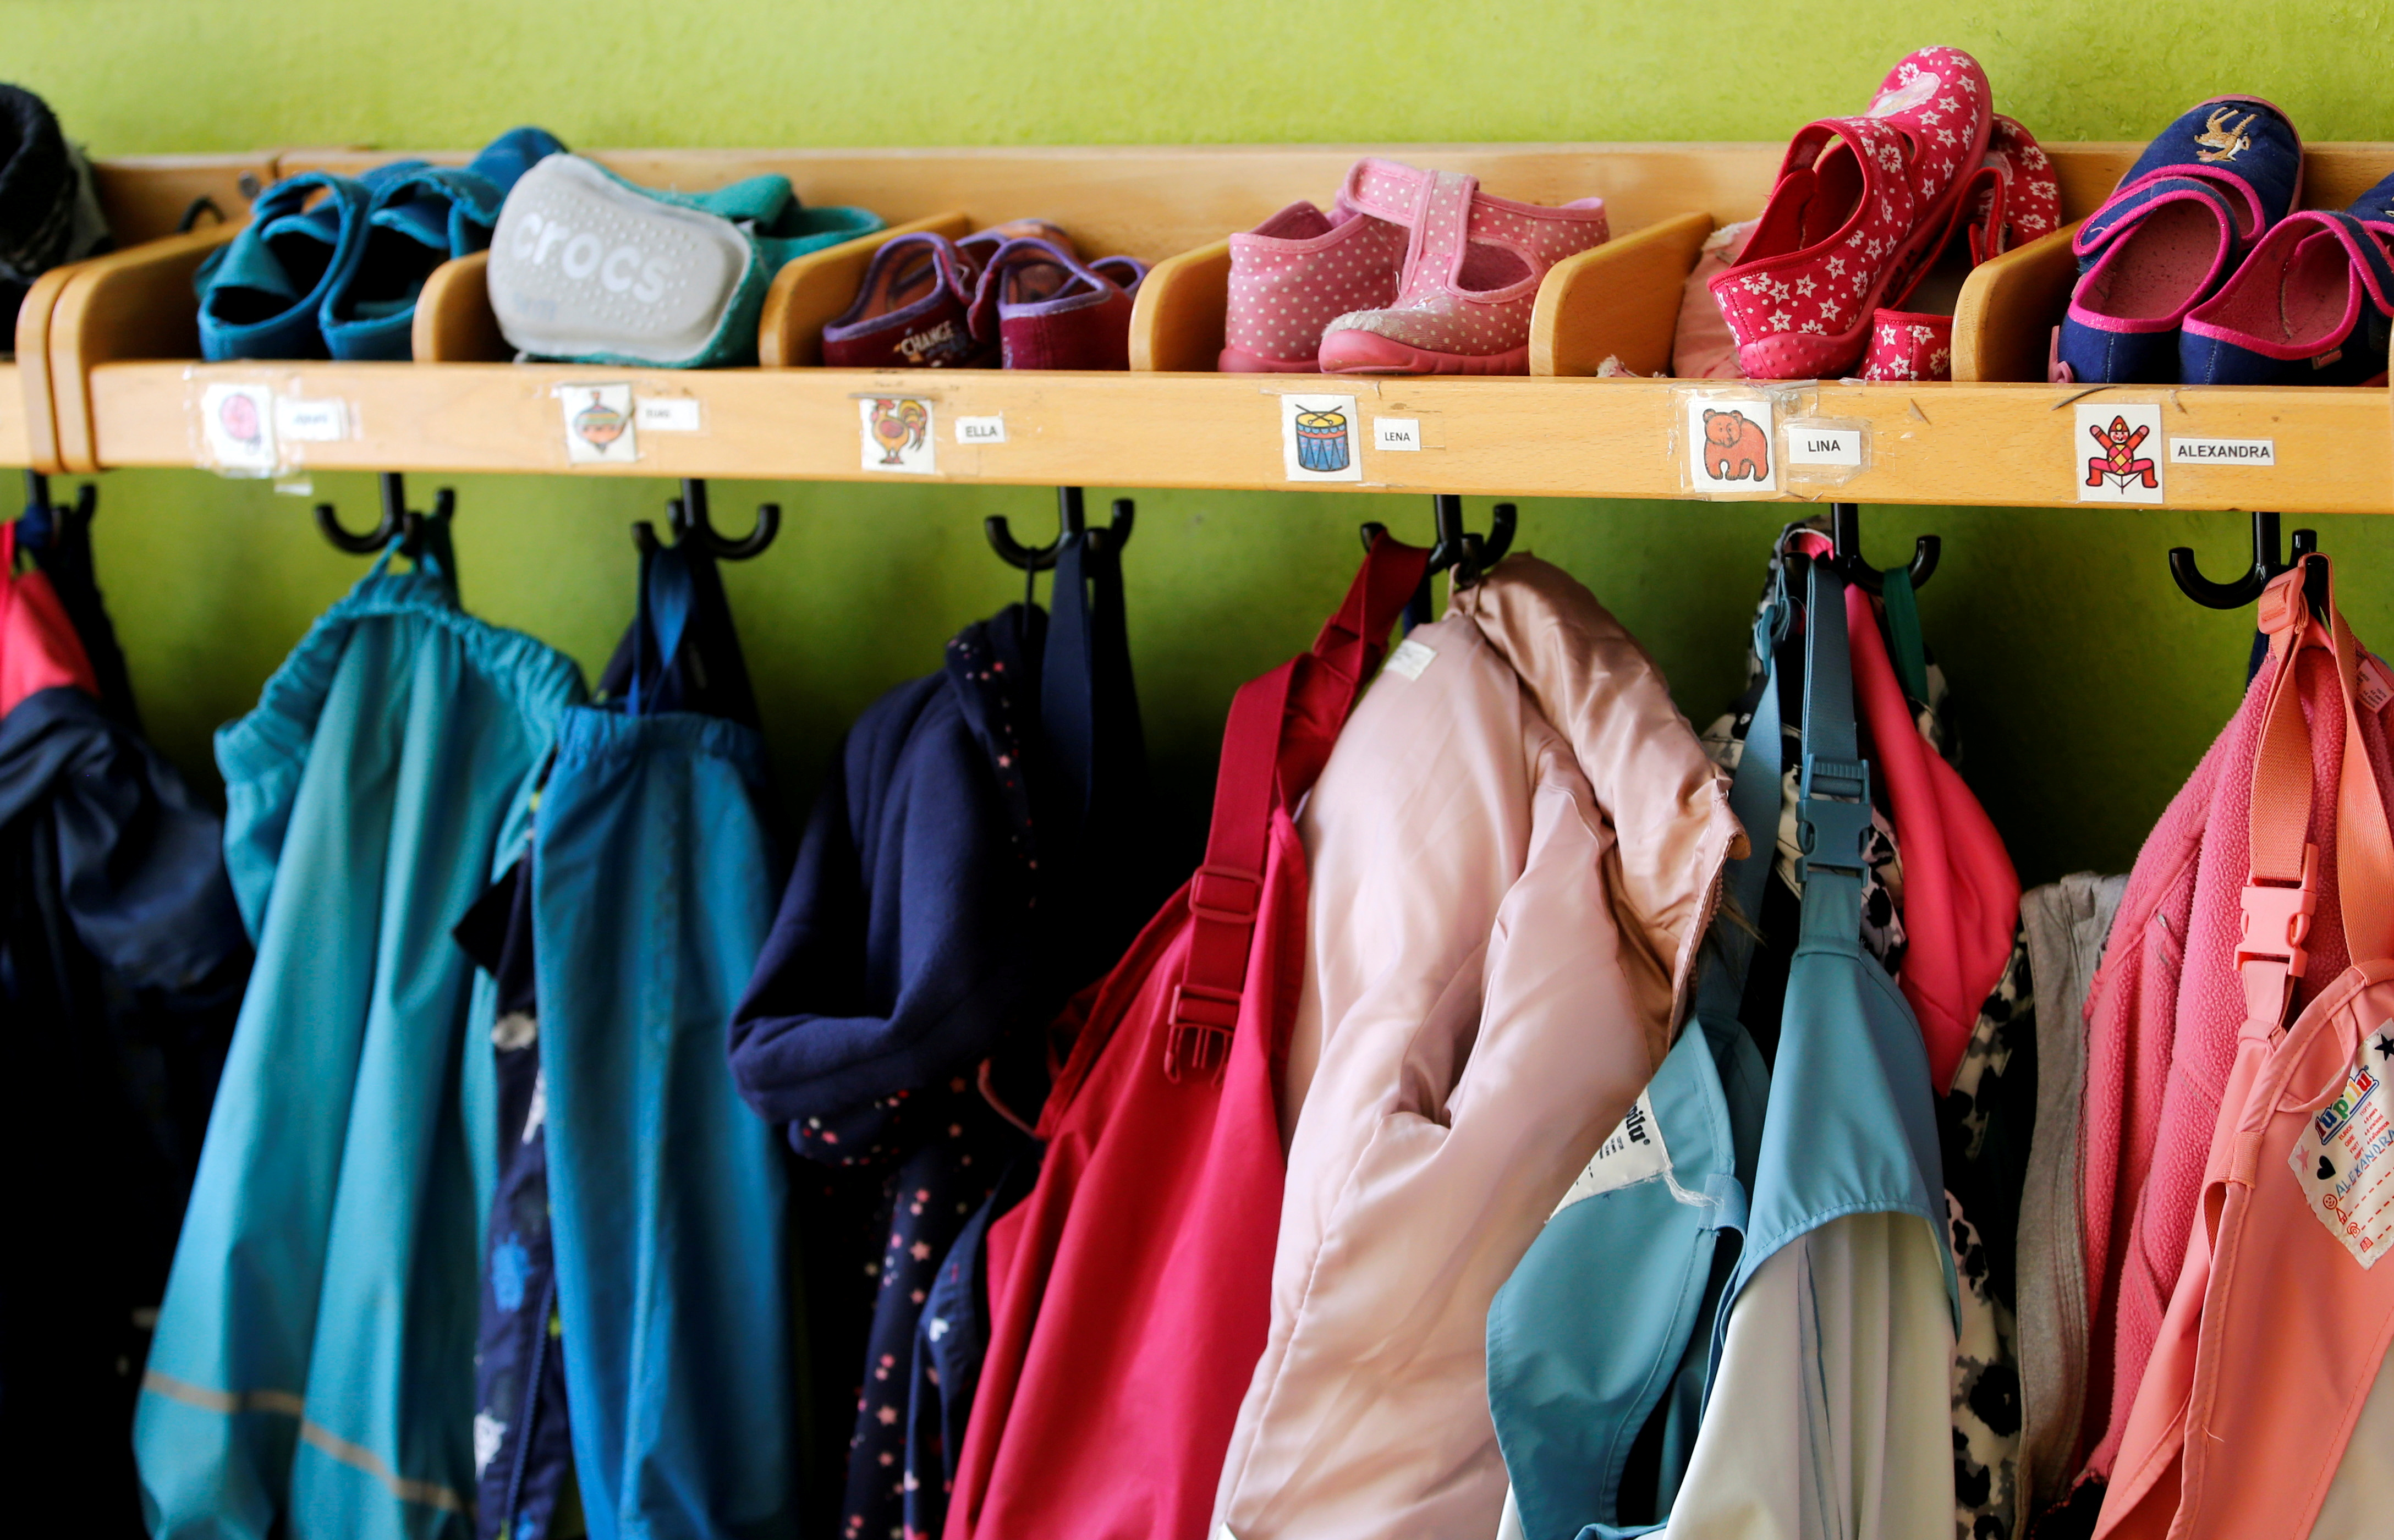 A coat rack with children's clothing is seen at a nursery school as the spread of the coronavirus disease (COVID-19) continues, Velbert, Germany, April 8, 2021. REUTERS/Leon Kuegeler